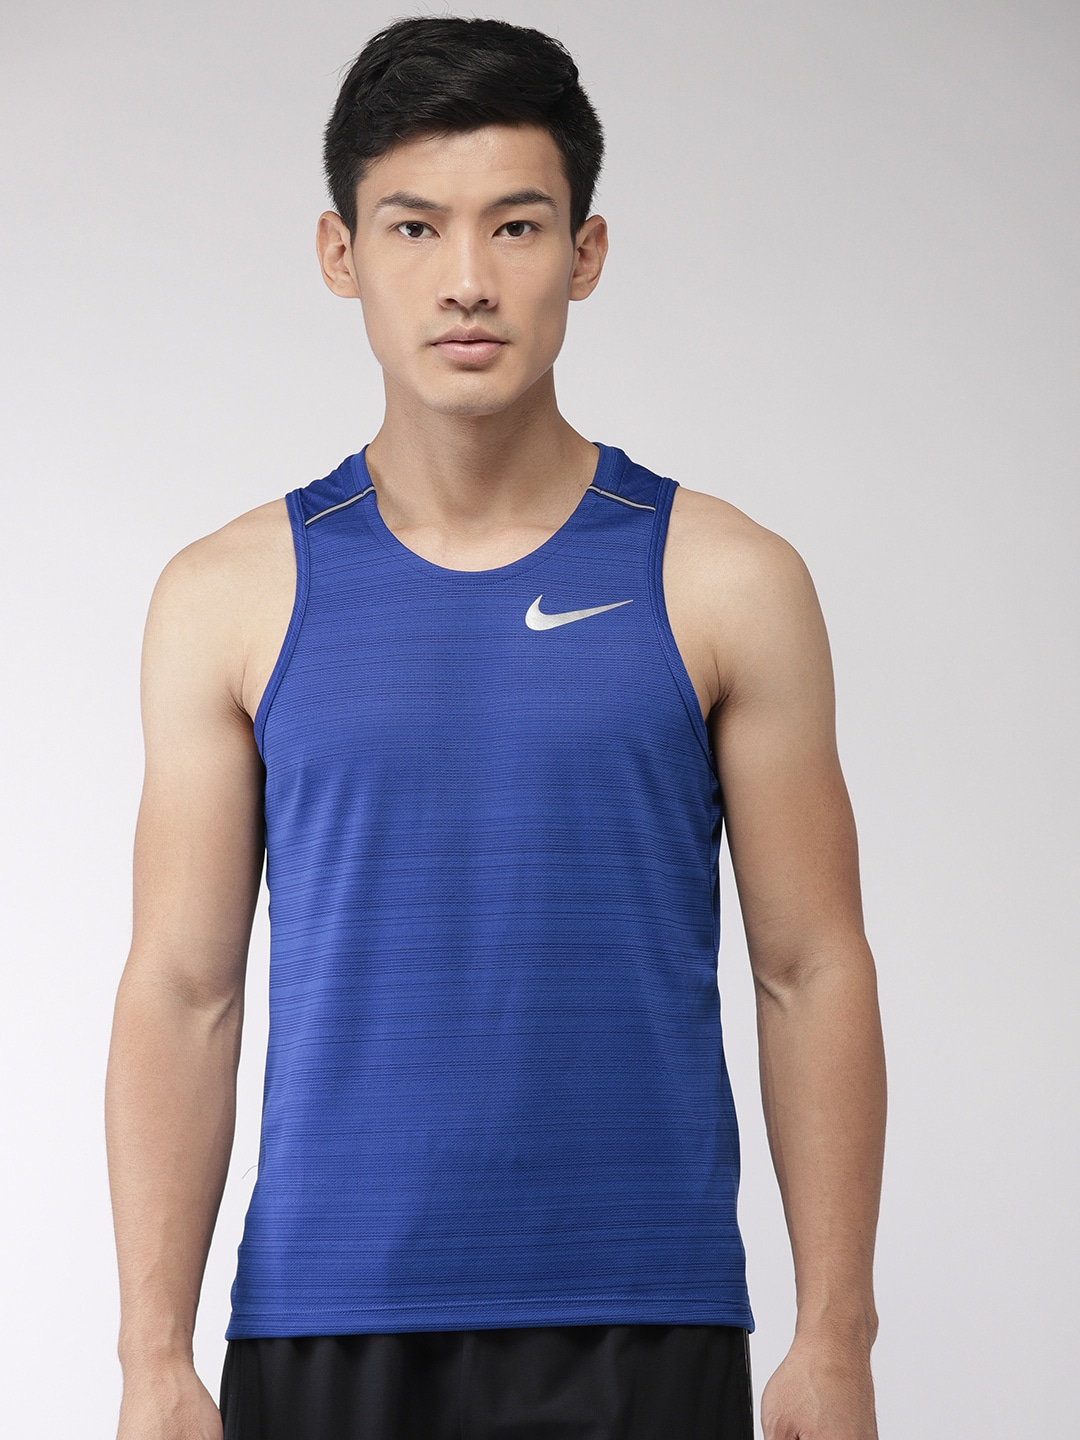 39ed258ba6f6b Men Tank Tshirts - Buy Men Tank Tshirts online in India